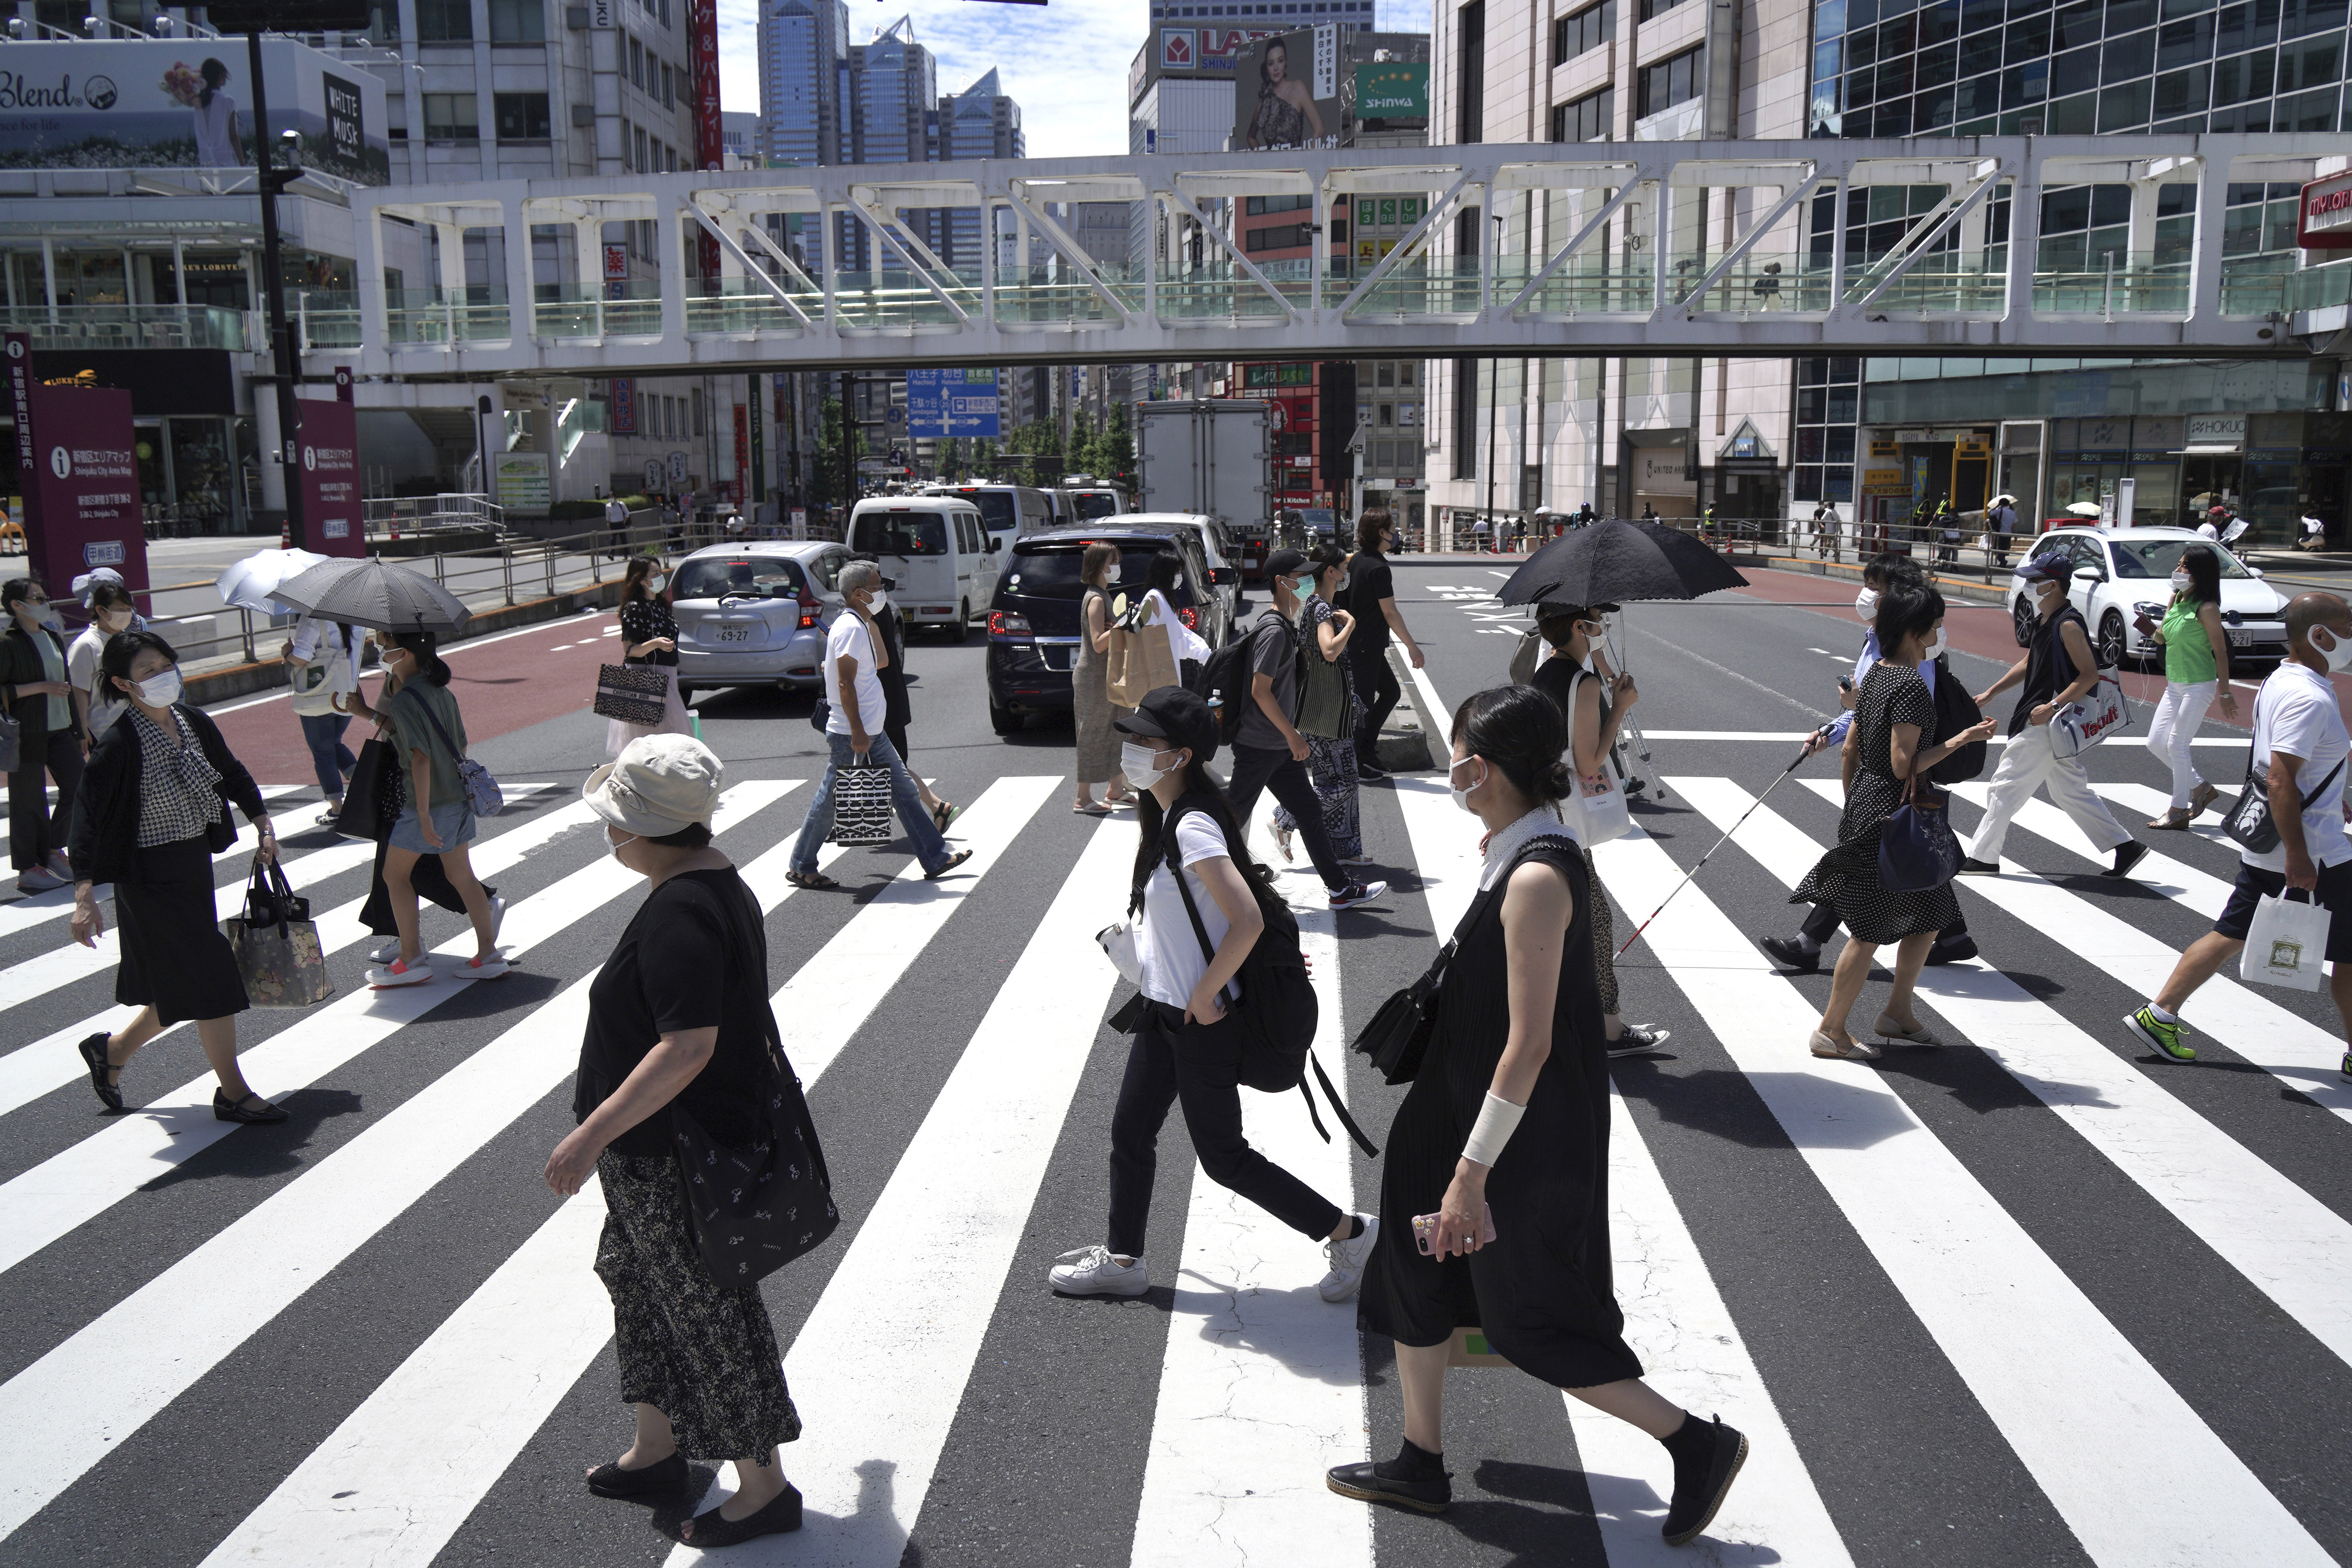 People cross a street in the Shinjuku district of Tokyo on Friday.